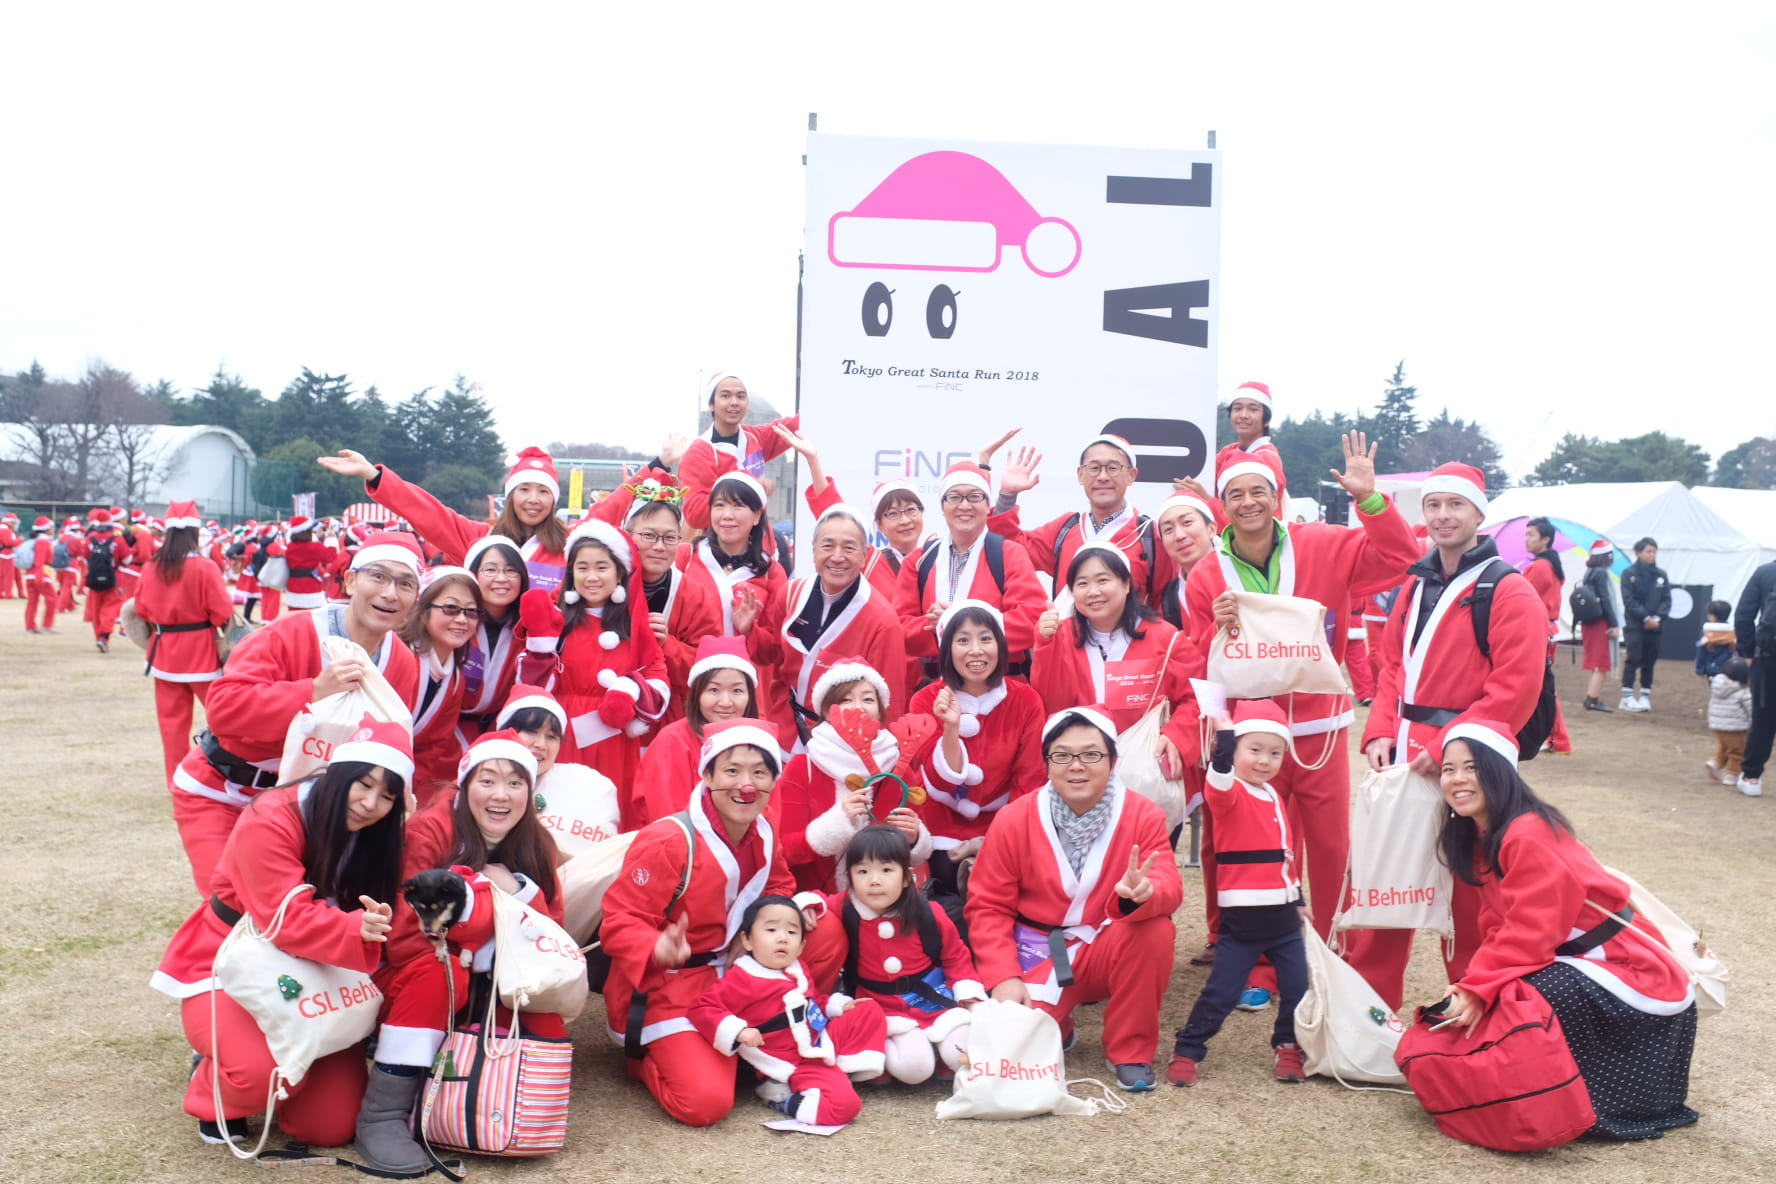 Group photo of CSL Behring employees at Great Santa Race 2018